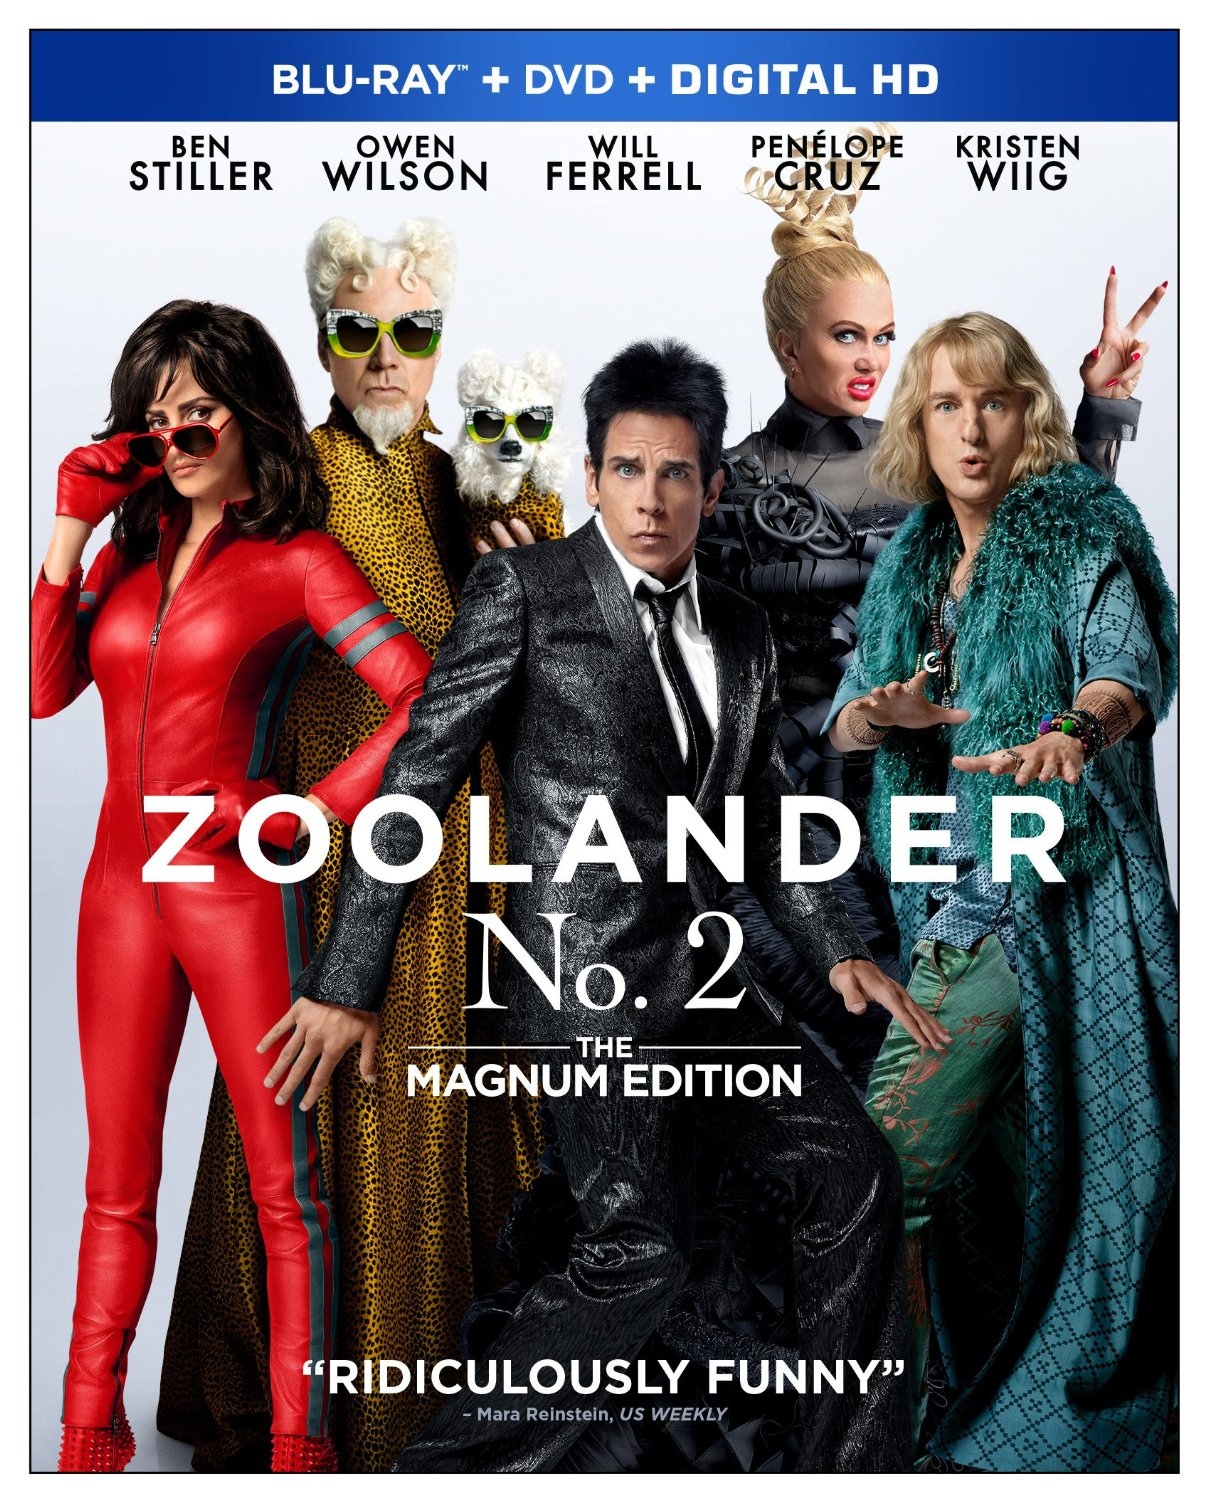 Zoolander 2 on Blu Ray and DVD